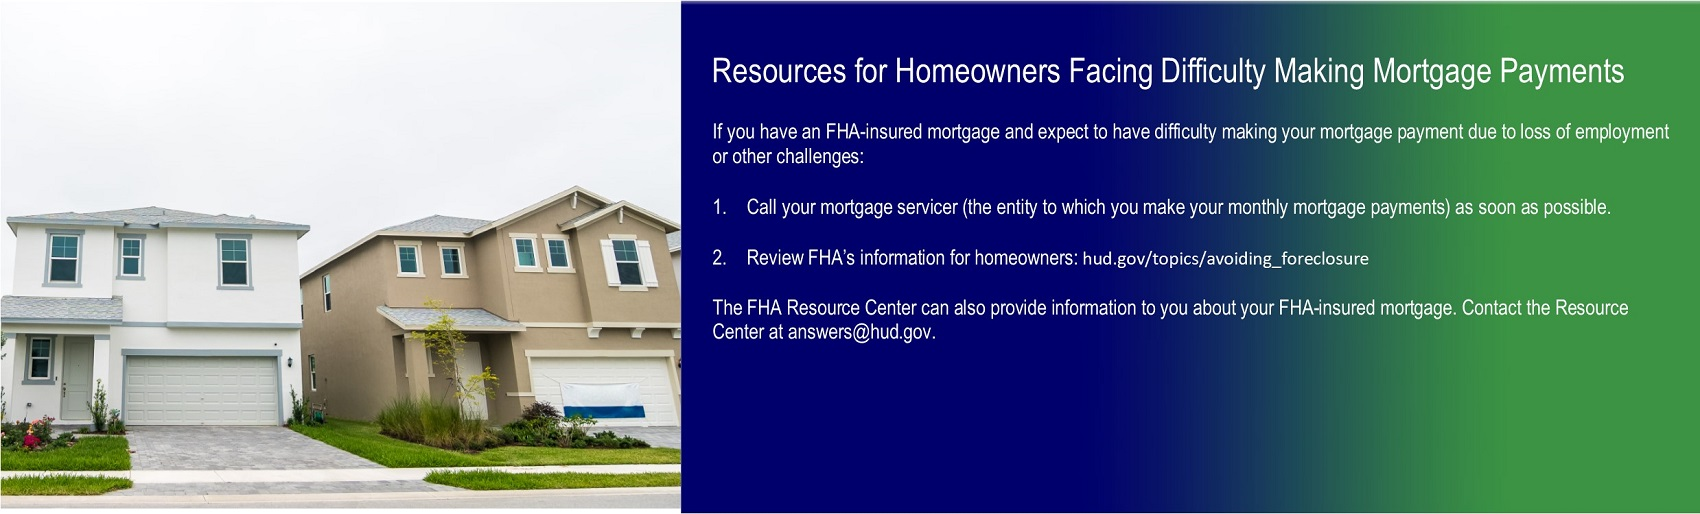 [Resources for Homeowners Facing Difficulty Making Mortgage Payments]. HUD Photo